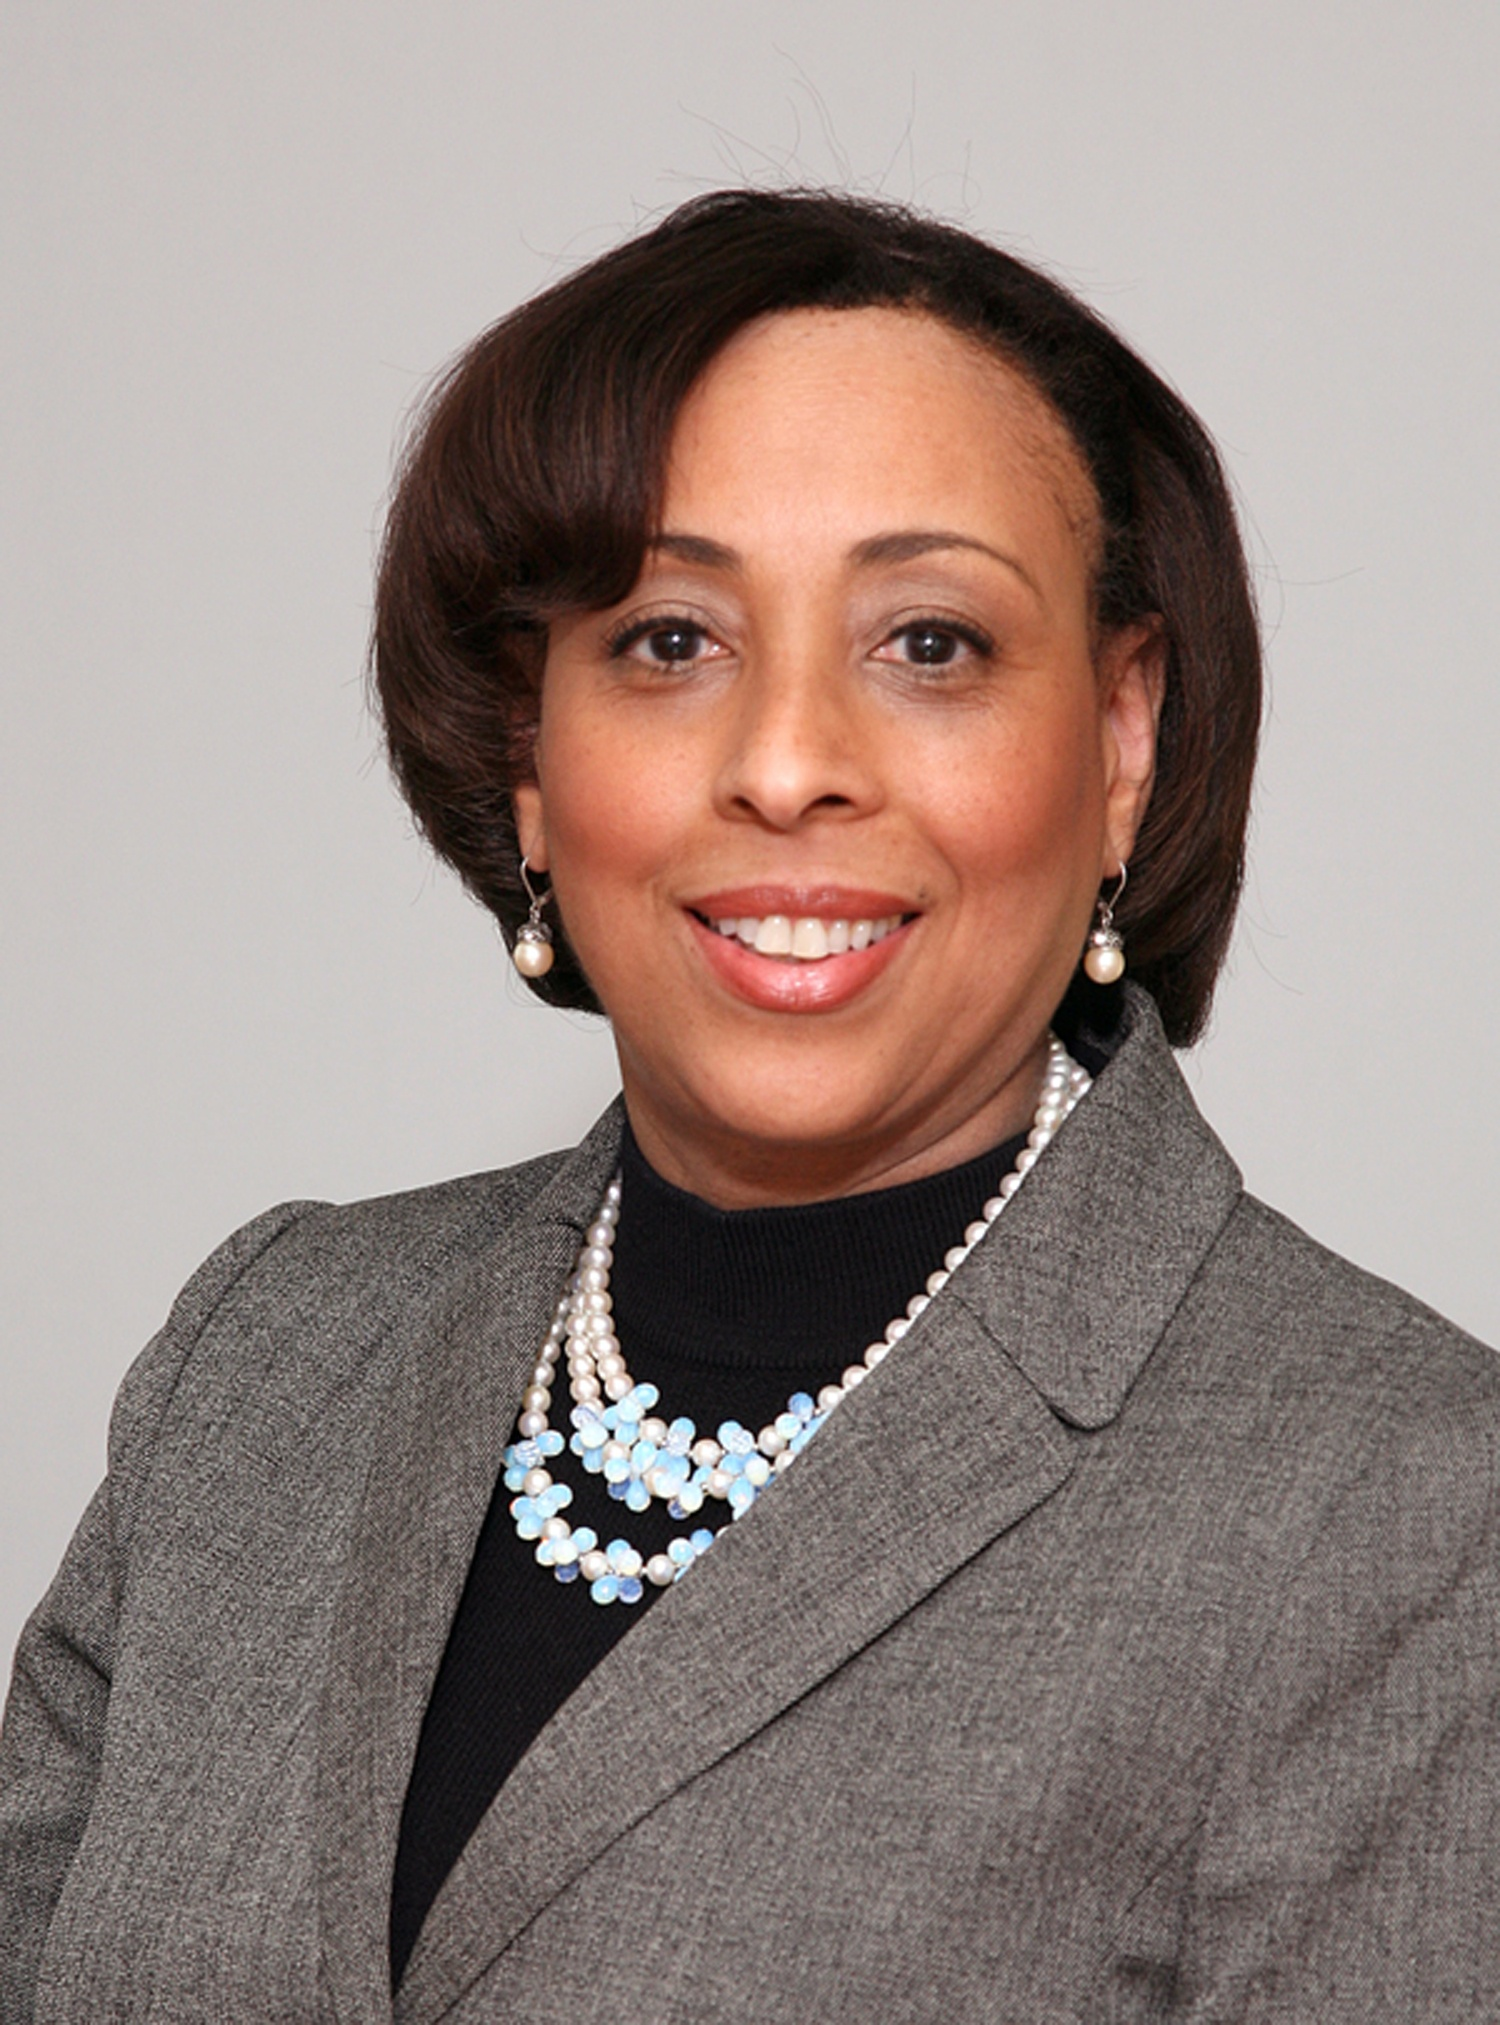 The Coca-Cola Company named Kathy N. Waller, 55, to succeed Fayard in the role of Chief Financial Officer. (Photo: Business Wire)